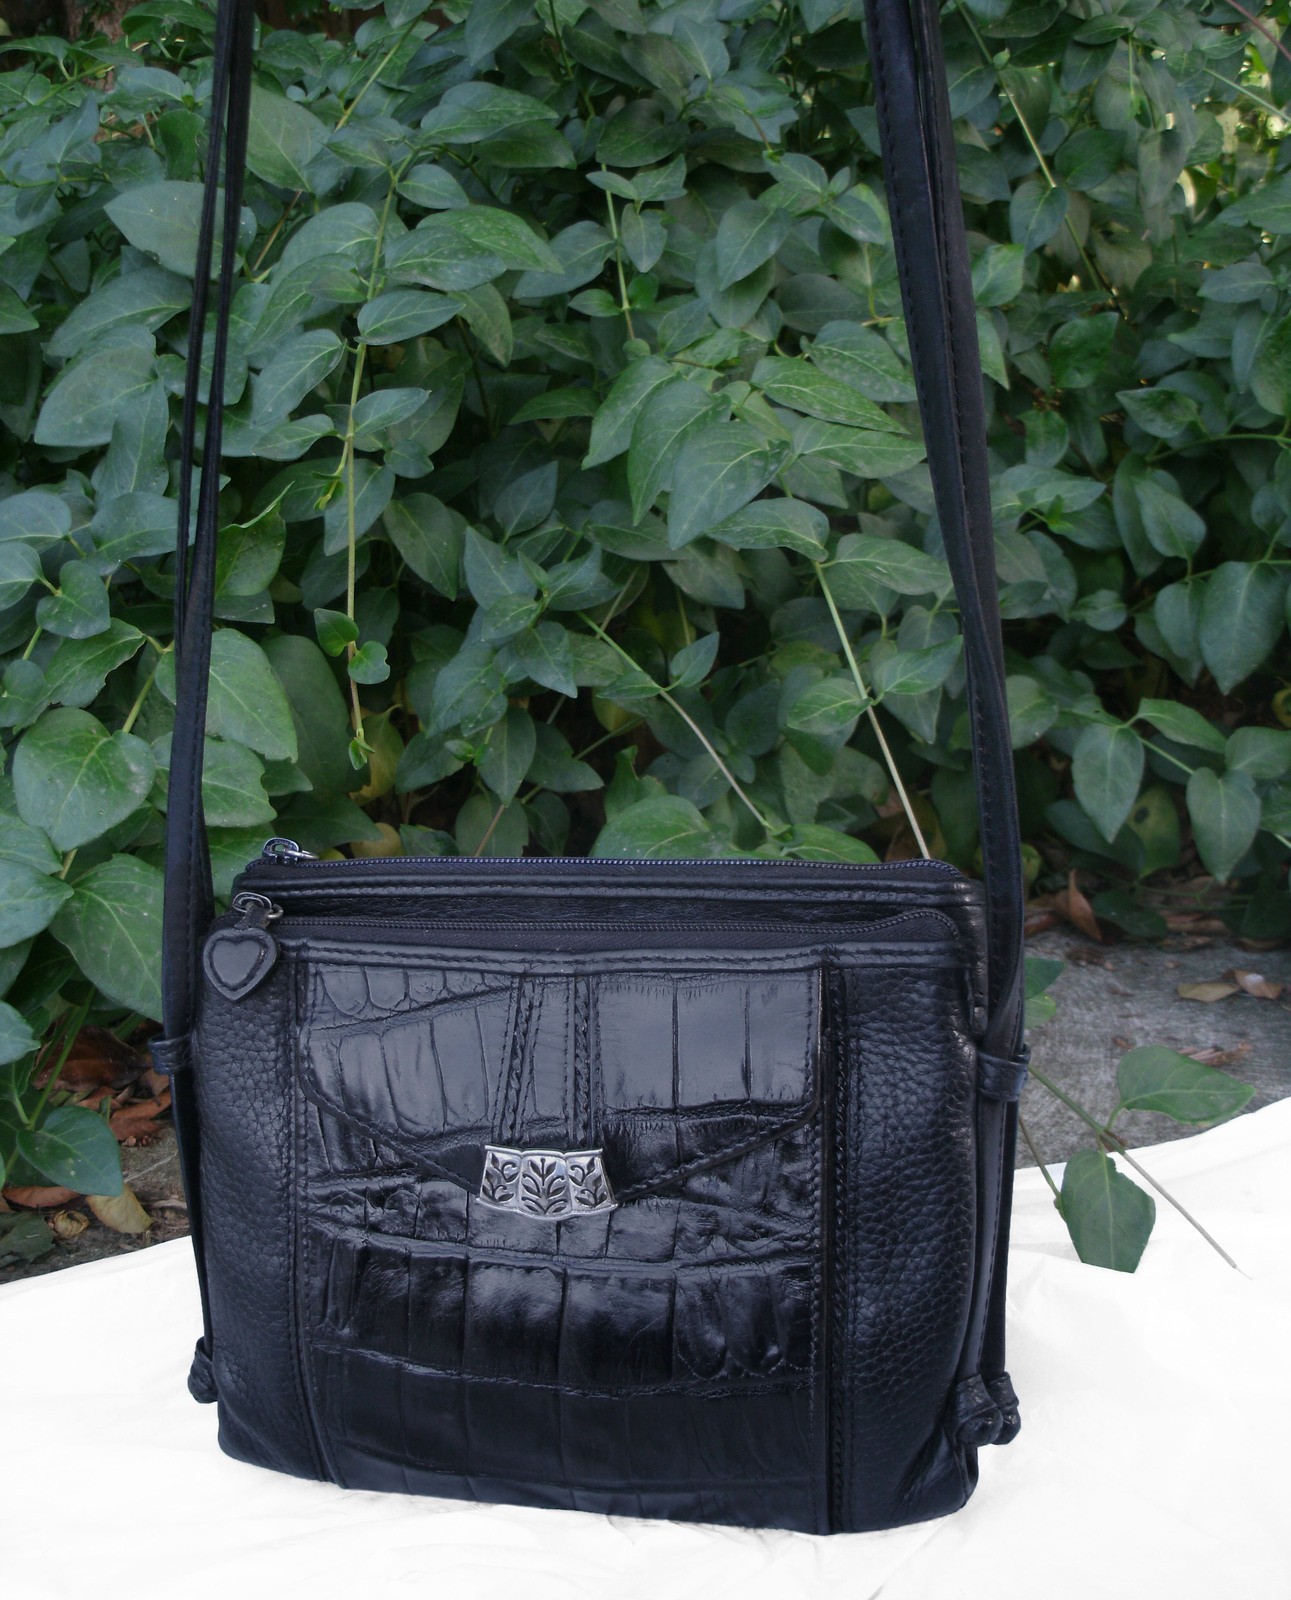 Brighton Croc and Pebbled Leather Cross Body Organizer Bag Black Silver Wallet image 2